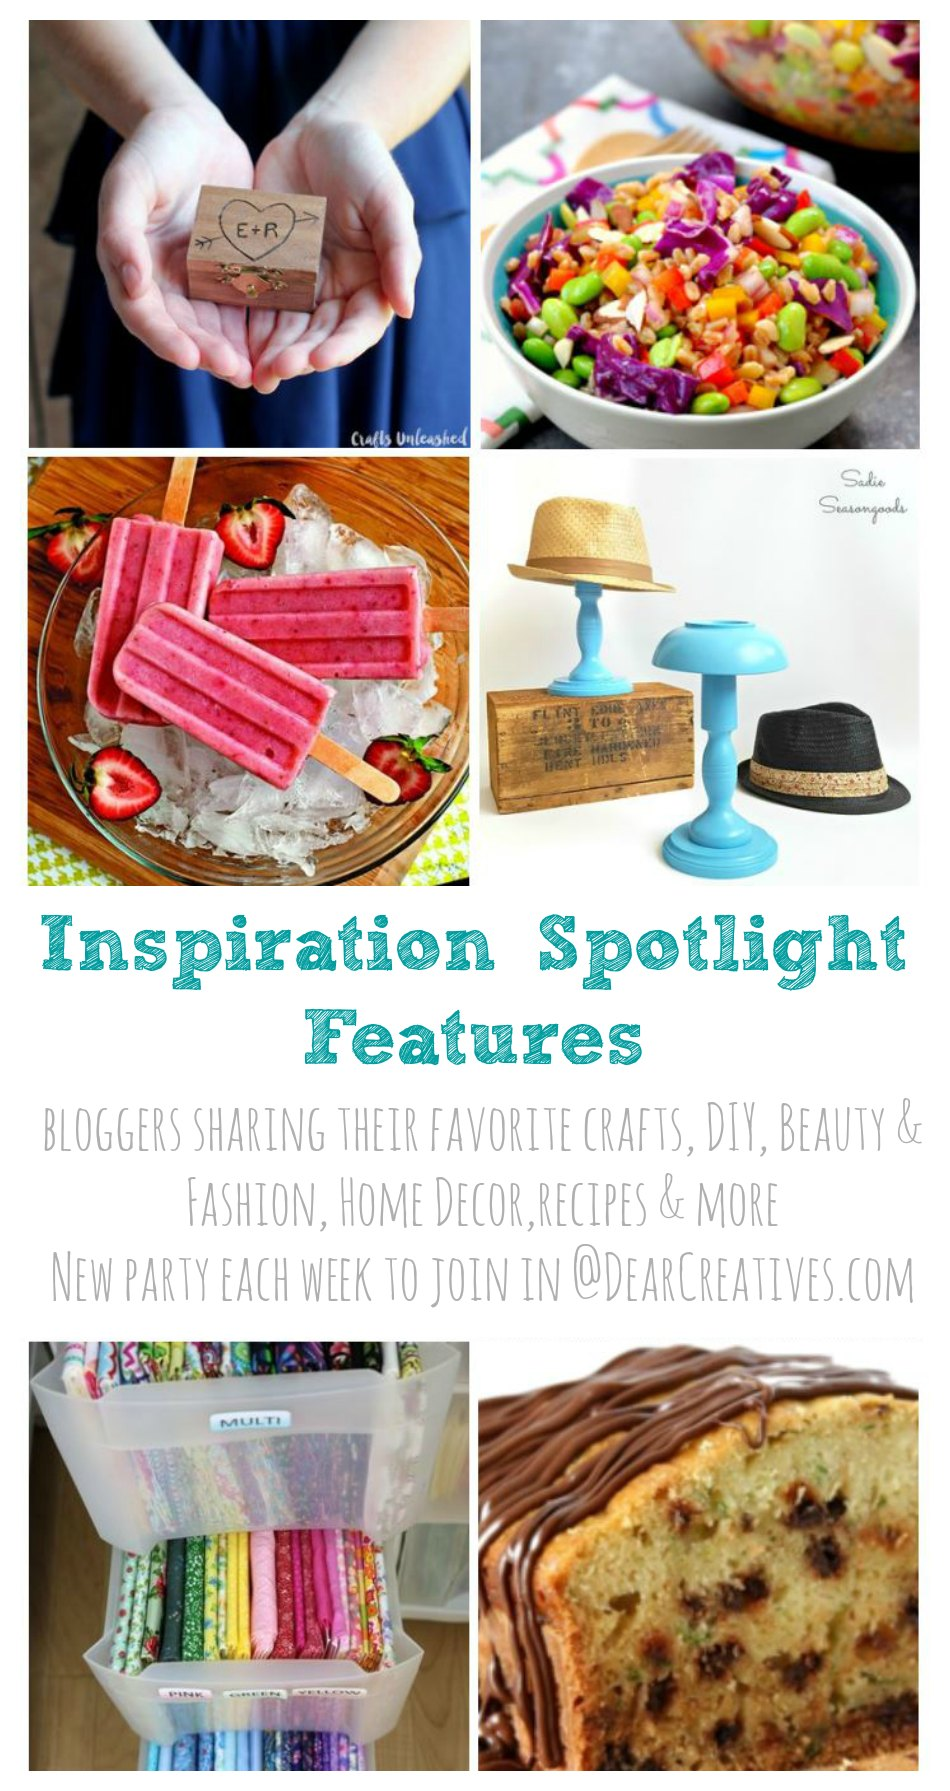 Linkup Party Inspiration Spotlight Party 206 Bloggers sharing their favorite crafts, DIY, recipes and more DearCreatives.com